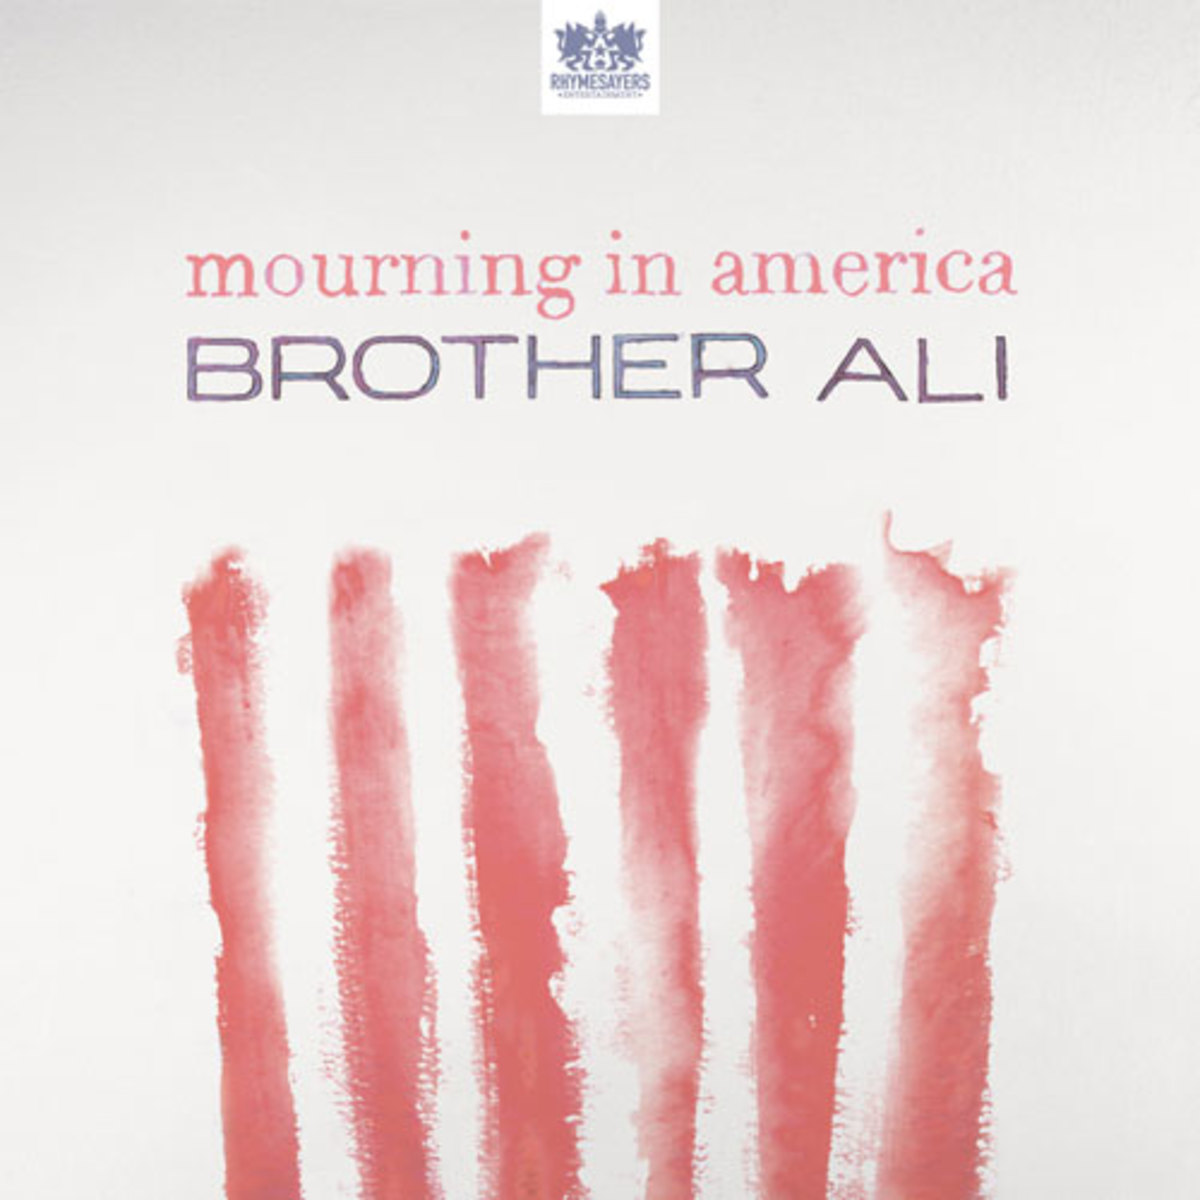 brotherali-mourninginamerica.jpg